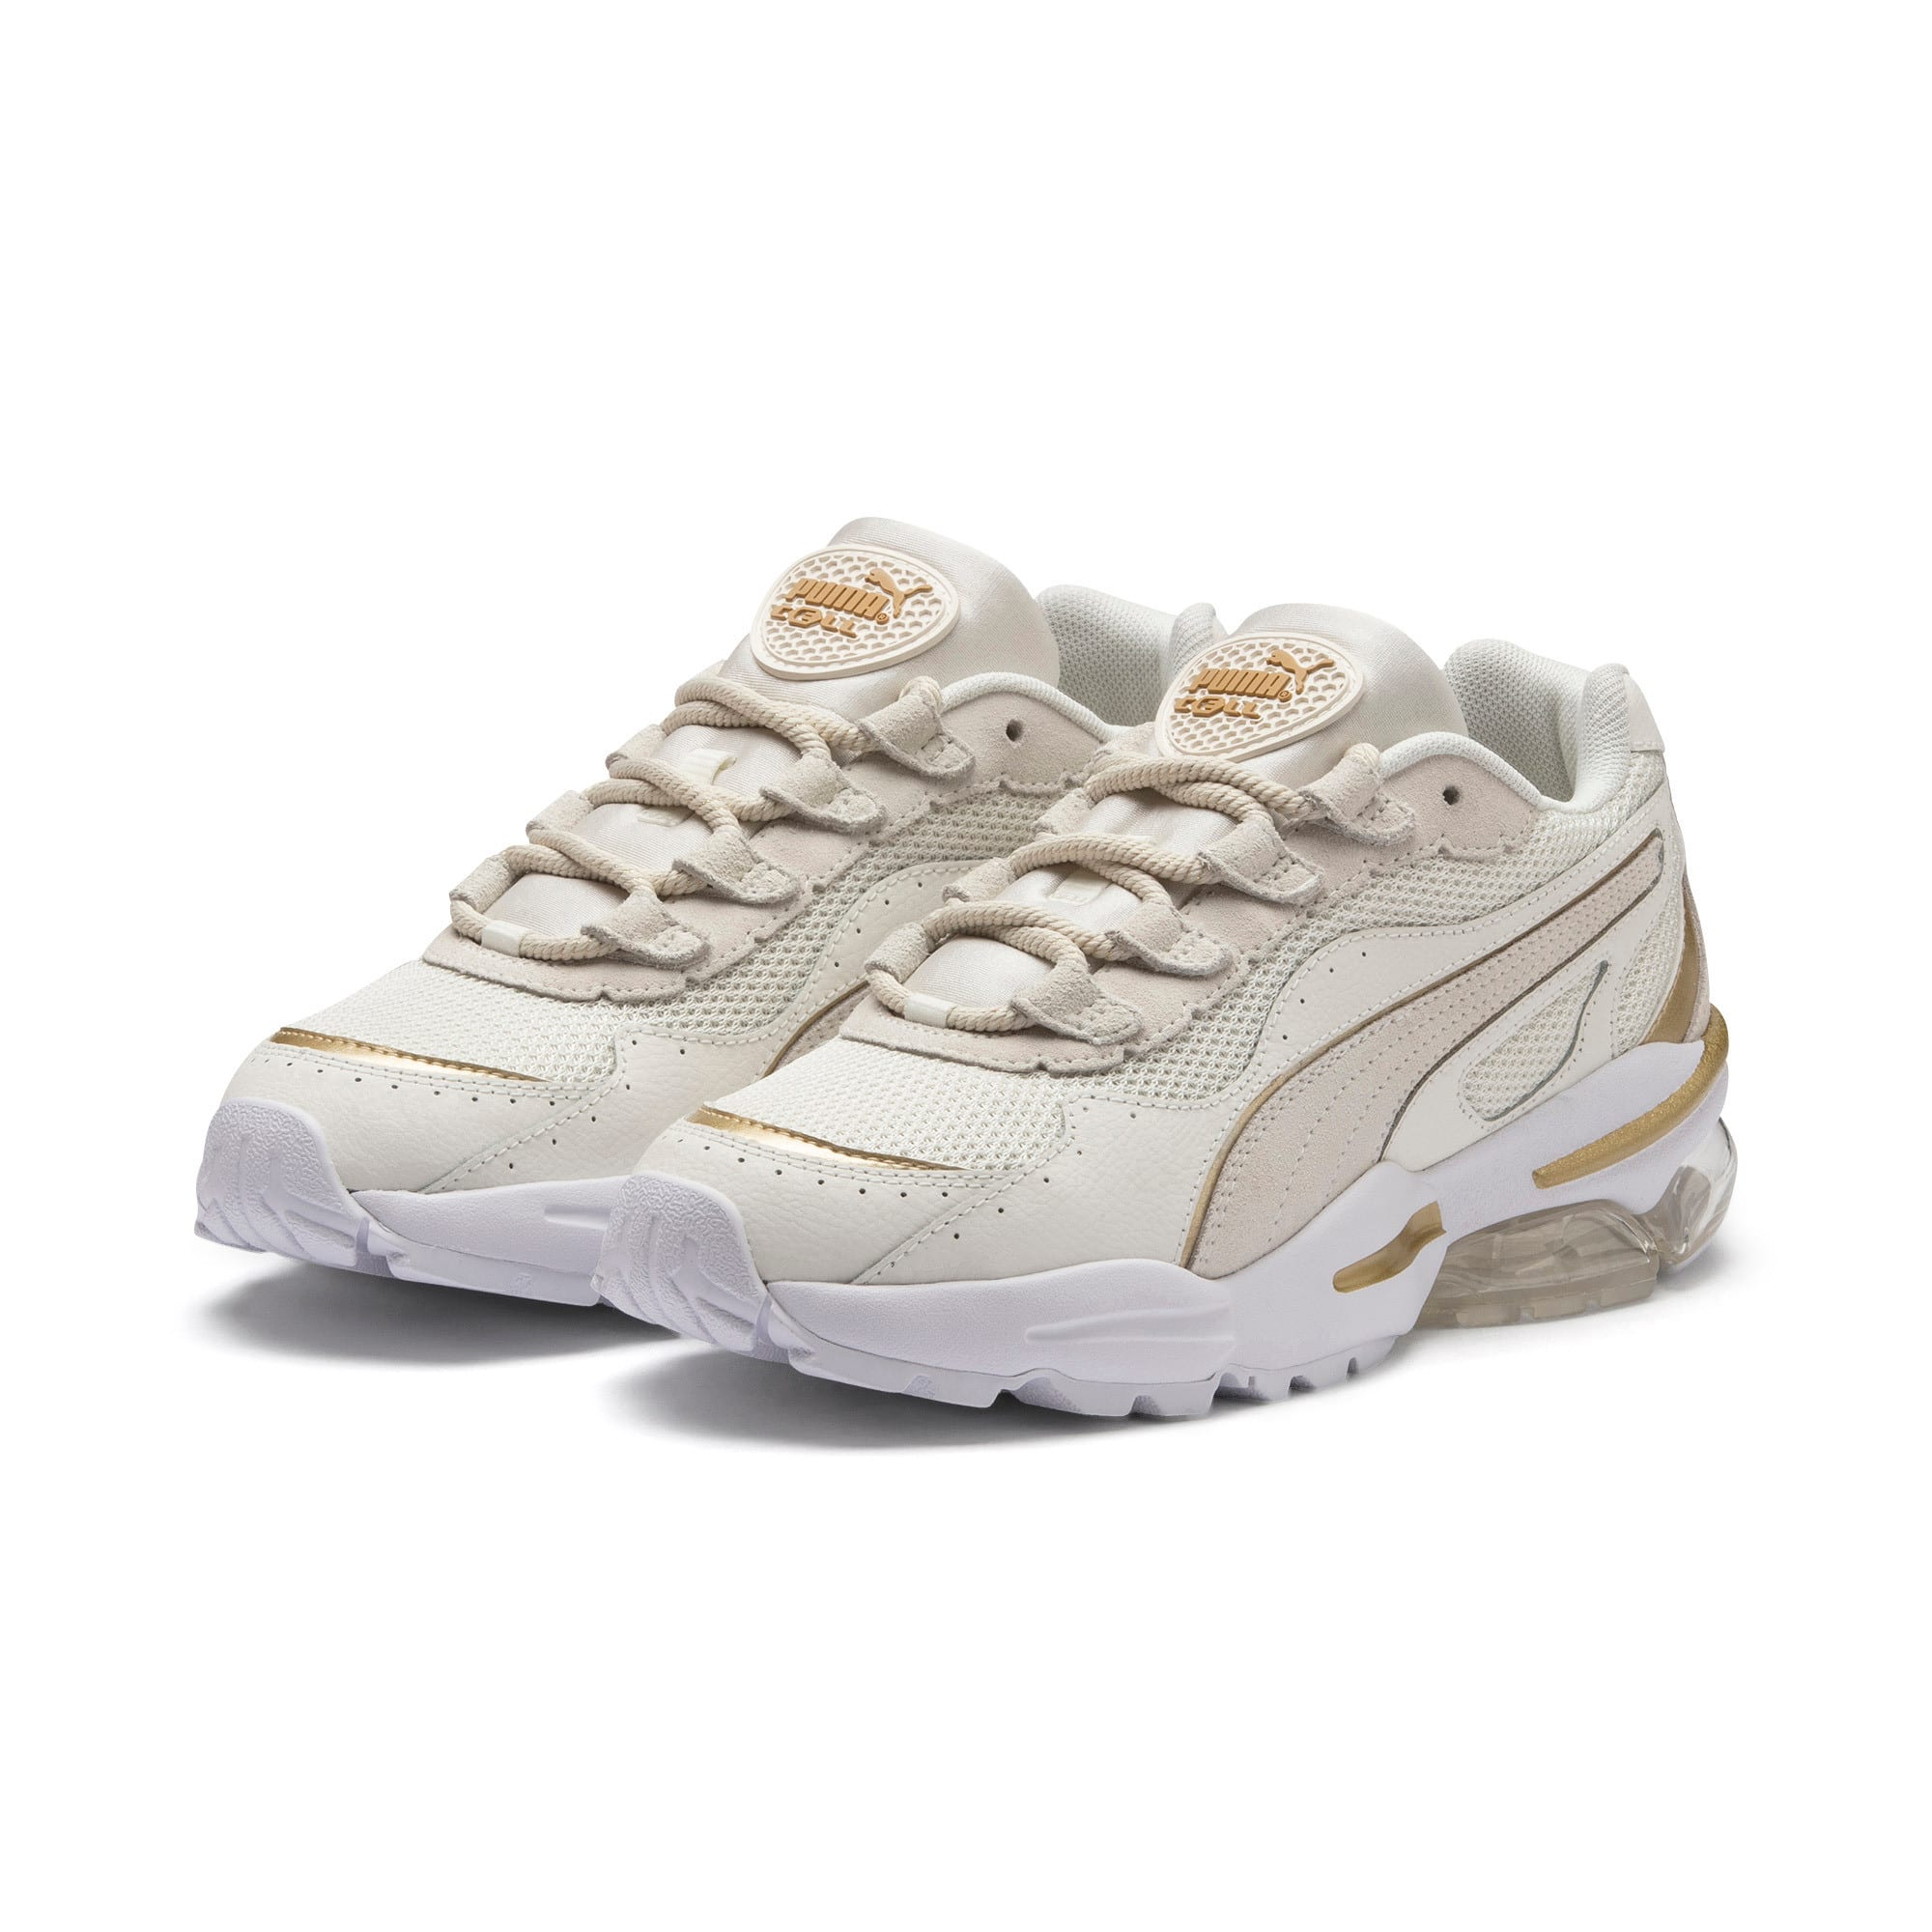 CELL Stellar Soft Women's Sneakers, Puma White-Puma Team Gold, large